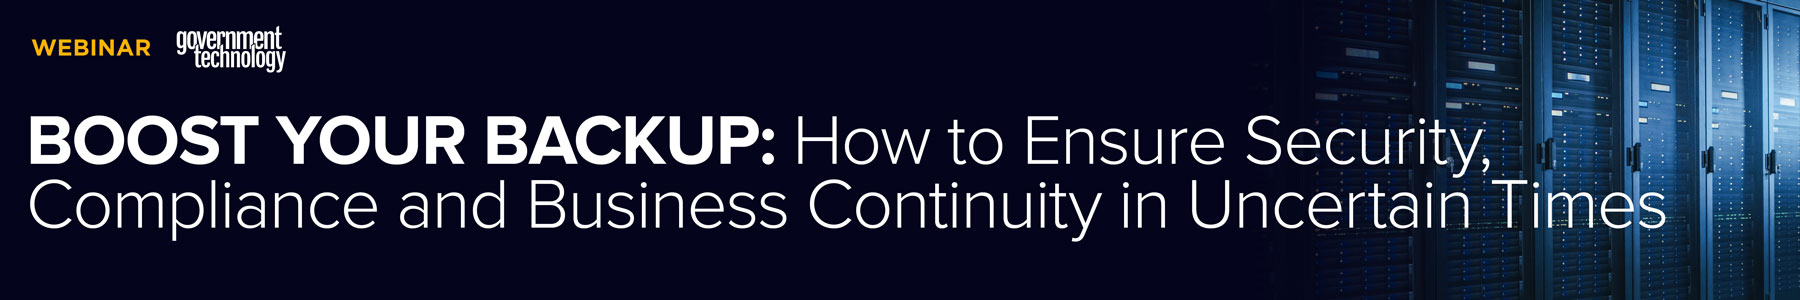 Boost Your Backup: How to Ensure Security, Compliance and Business Continuity in Uncertain Times